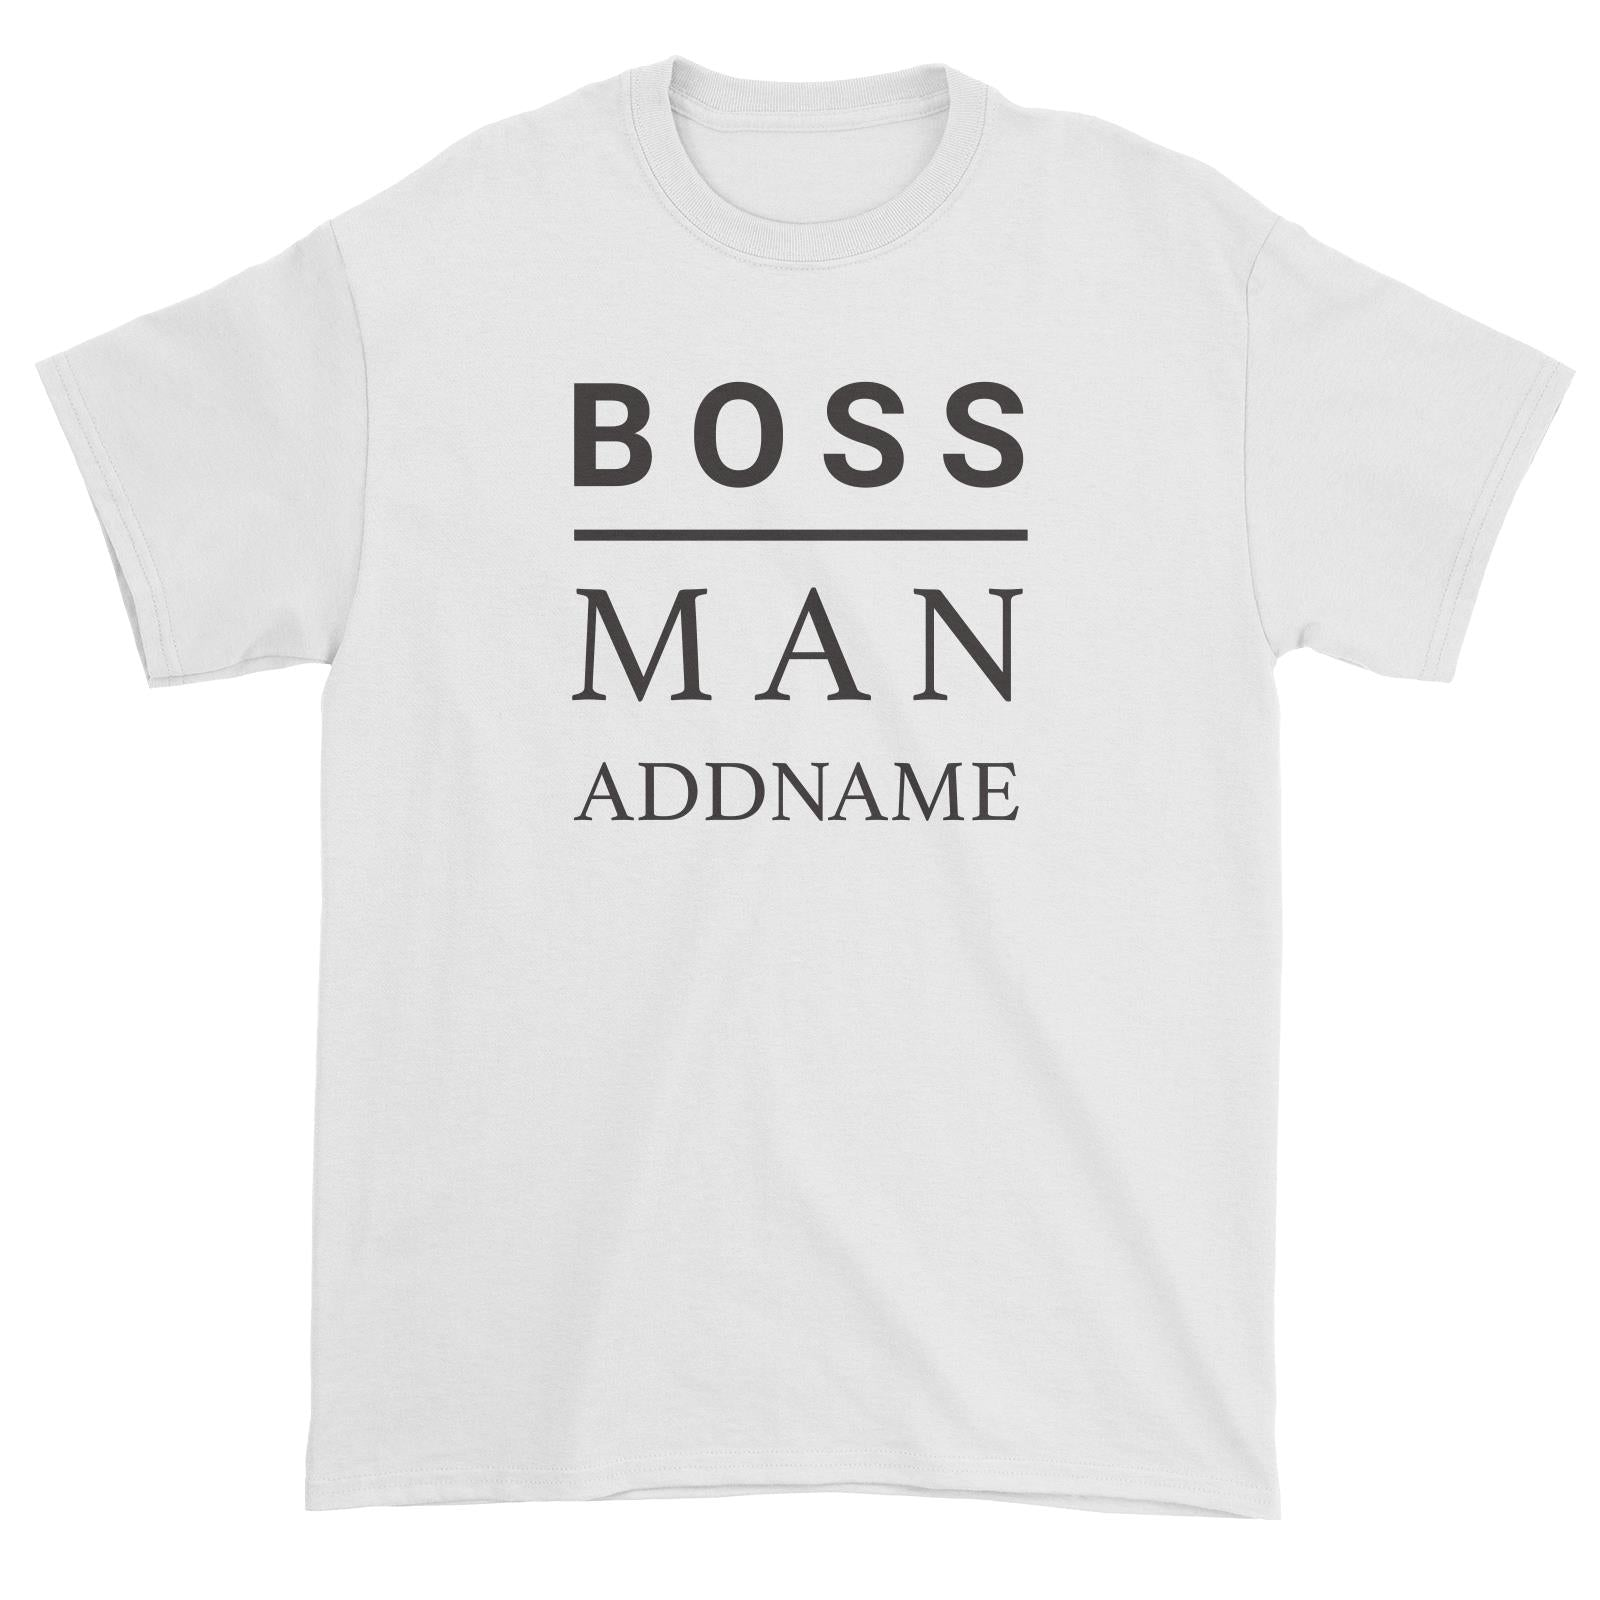 Boss Man Addname Unisex T-Shirt  Matching Family Personalizable Designs